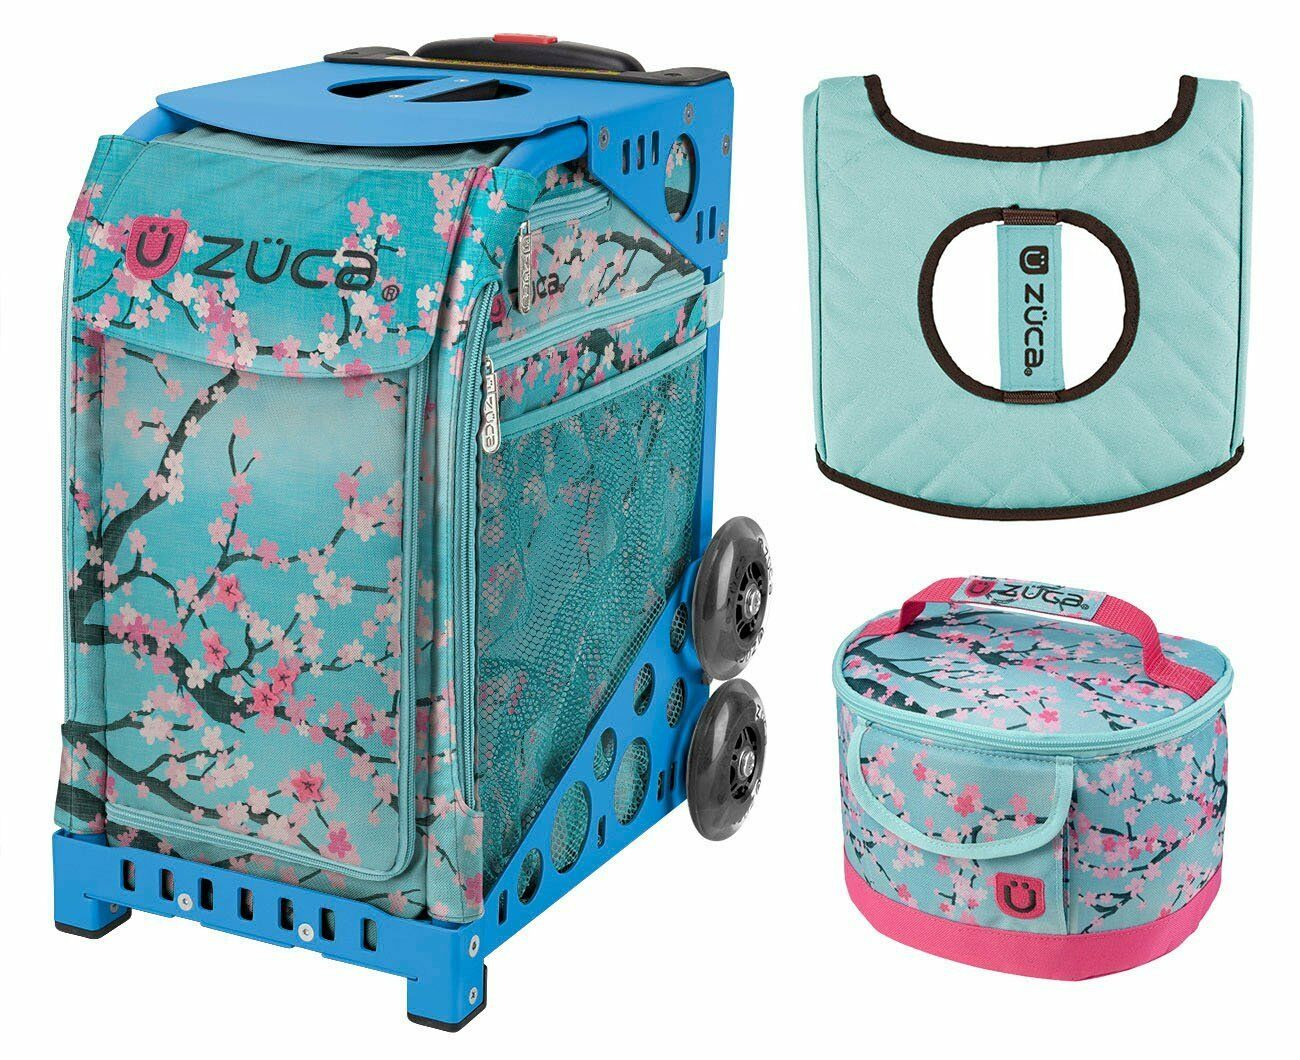 Zuca Sport Bag - Hanami with GIFT Lunchbox and Seat Cover (bluee Frame)